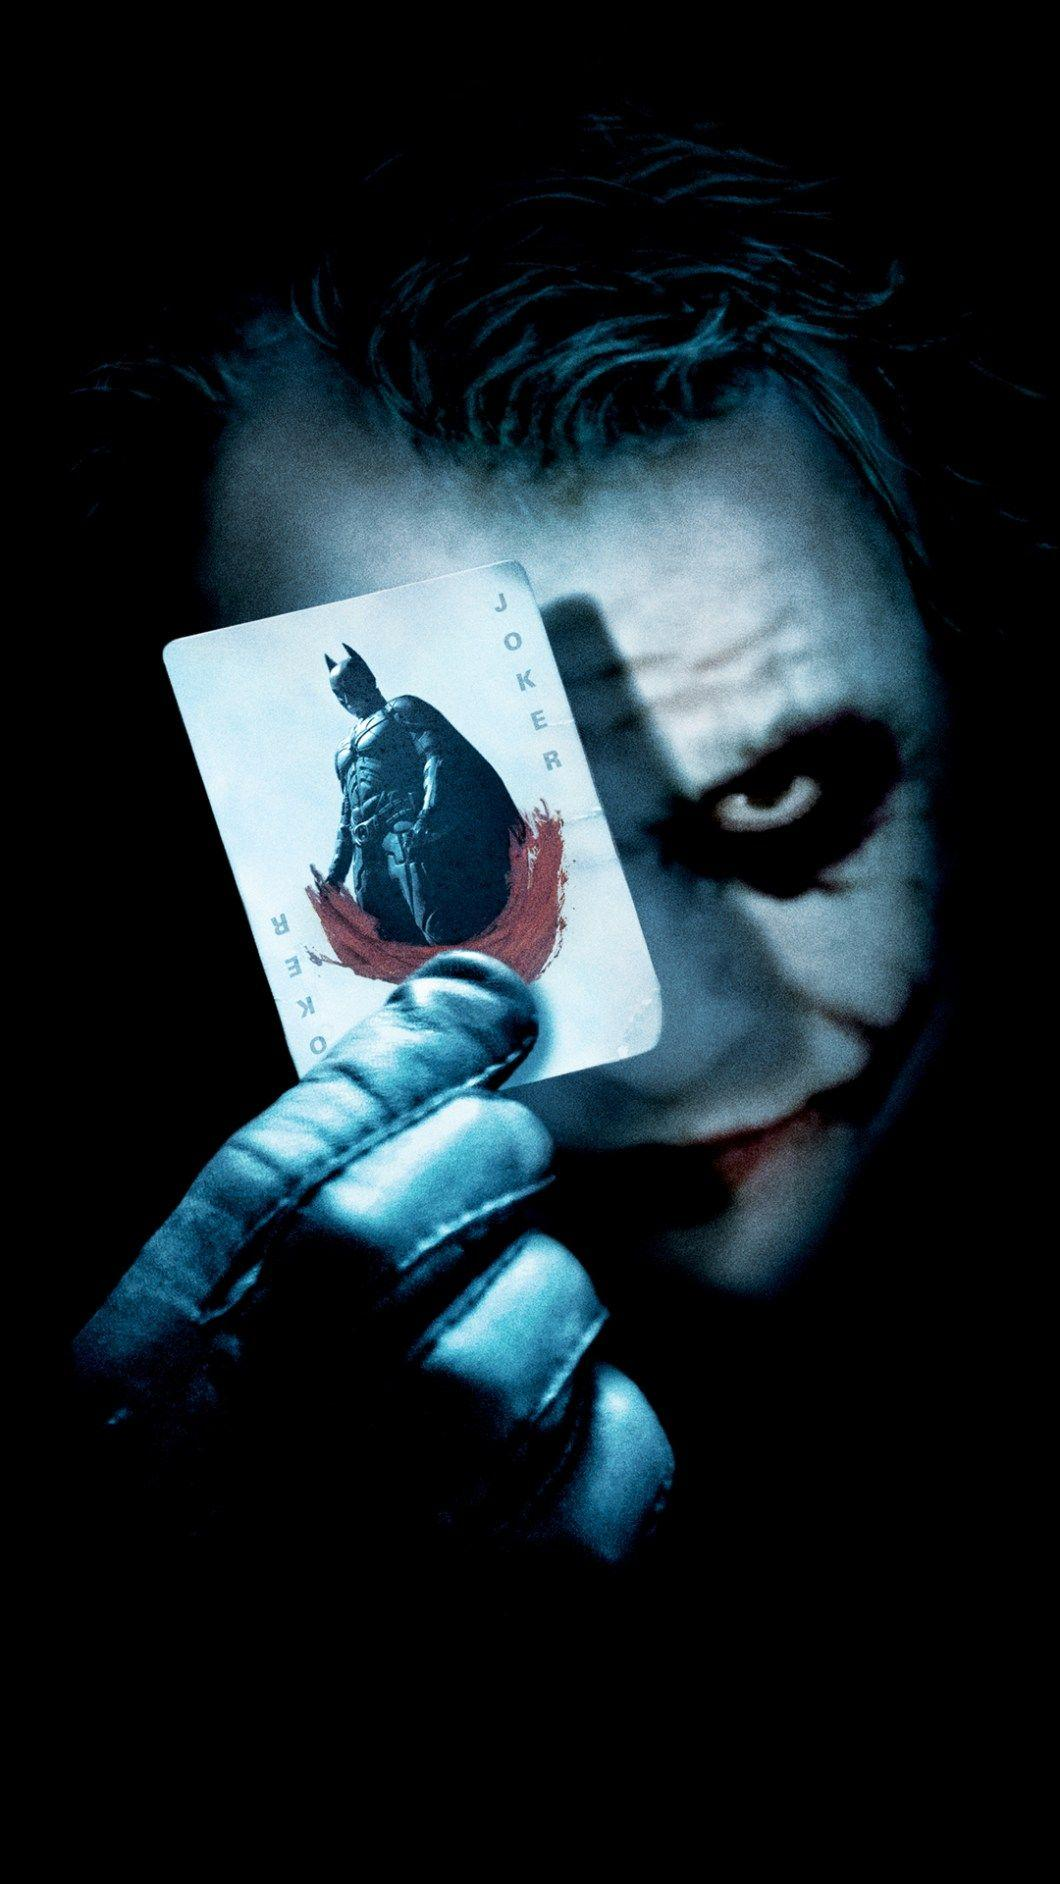 Joker Wallpaper Hd For Mobile | Gendiswallpaper.com